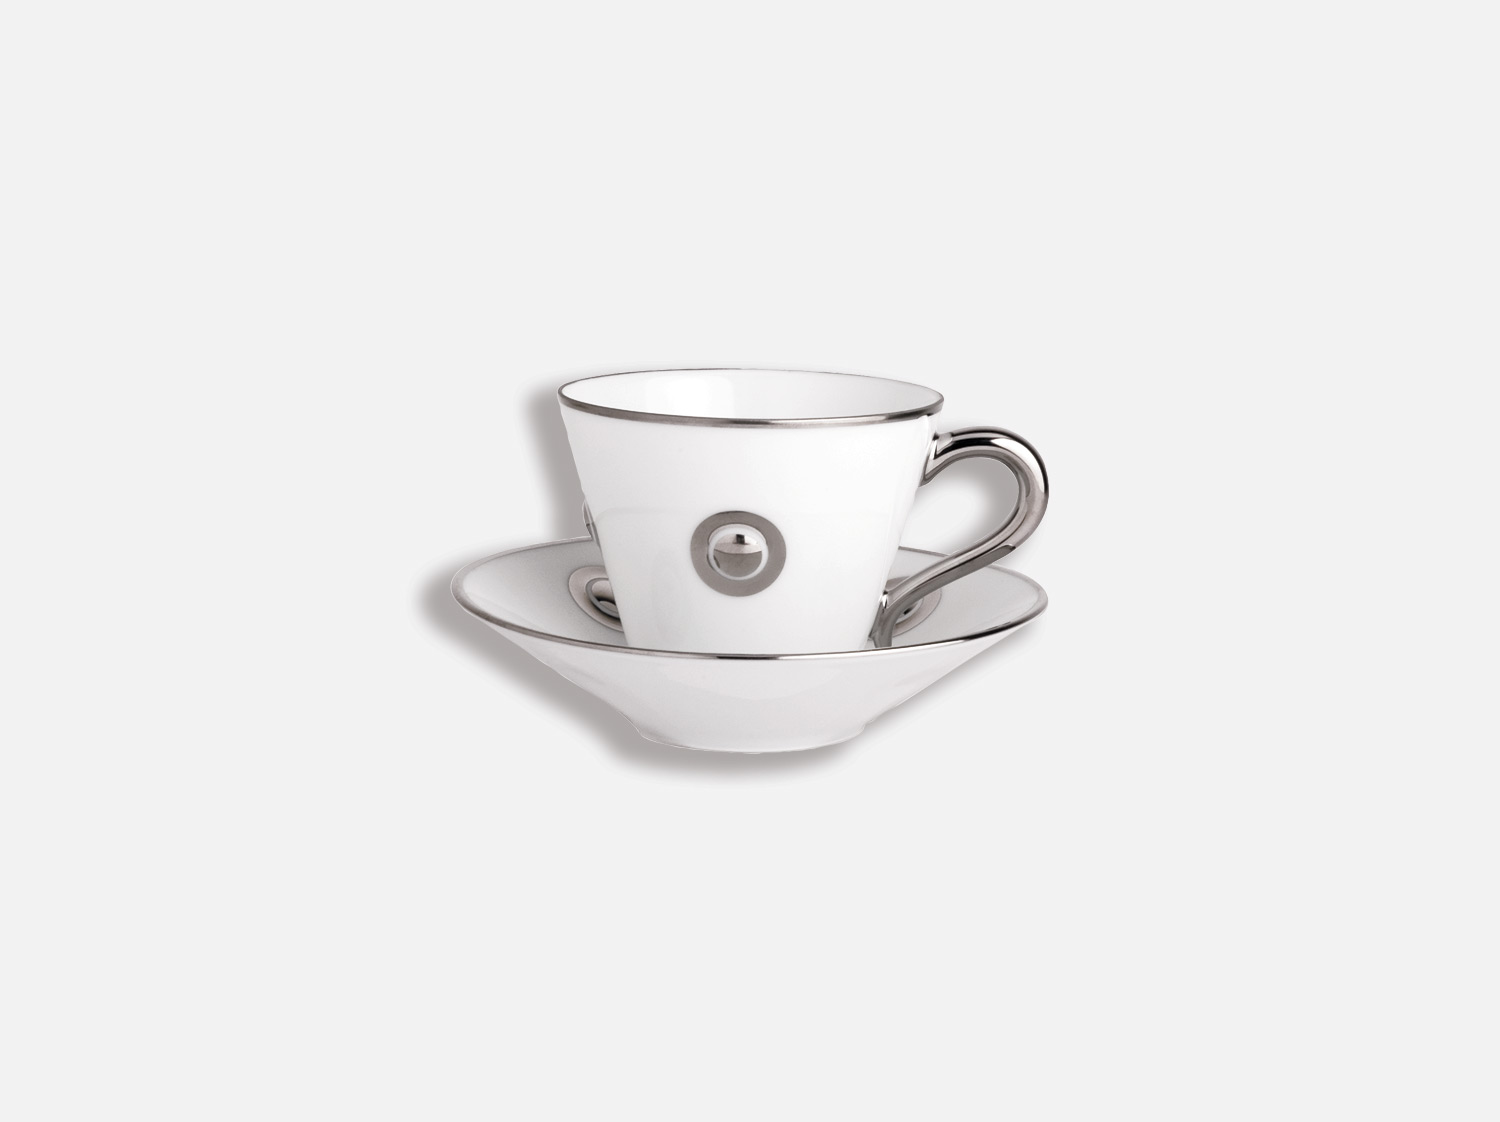 Tasse et soucoupe café 13 cl en porcelaine de la collection Ithaque platine Bernardaud